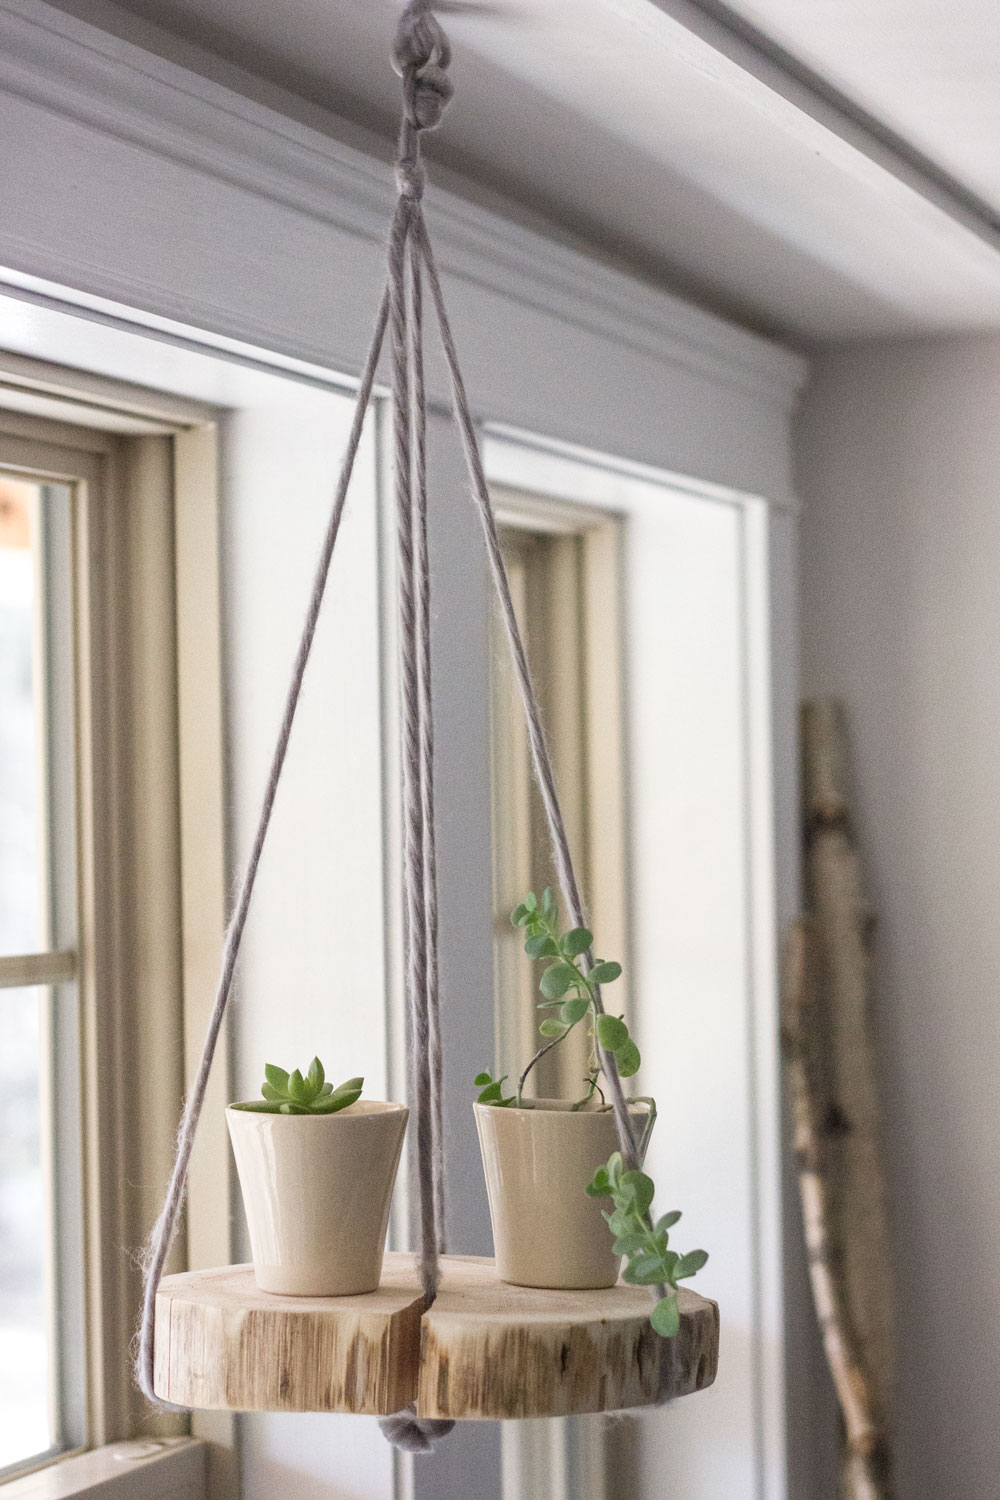 DIY+round+wood+shelf+plant+hanger.jpg